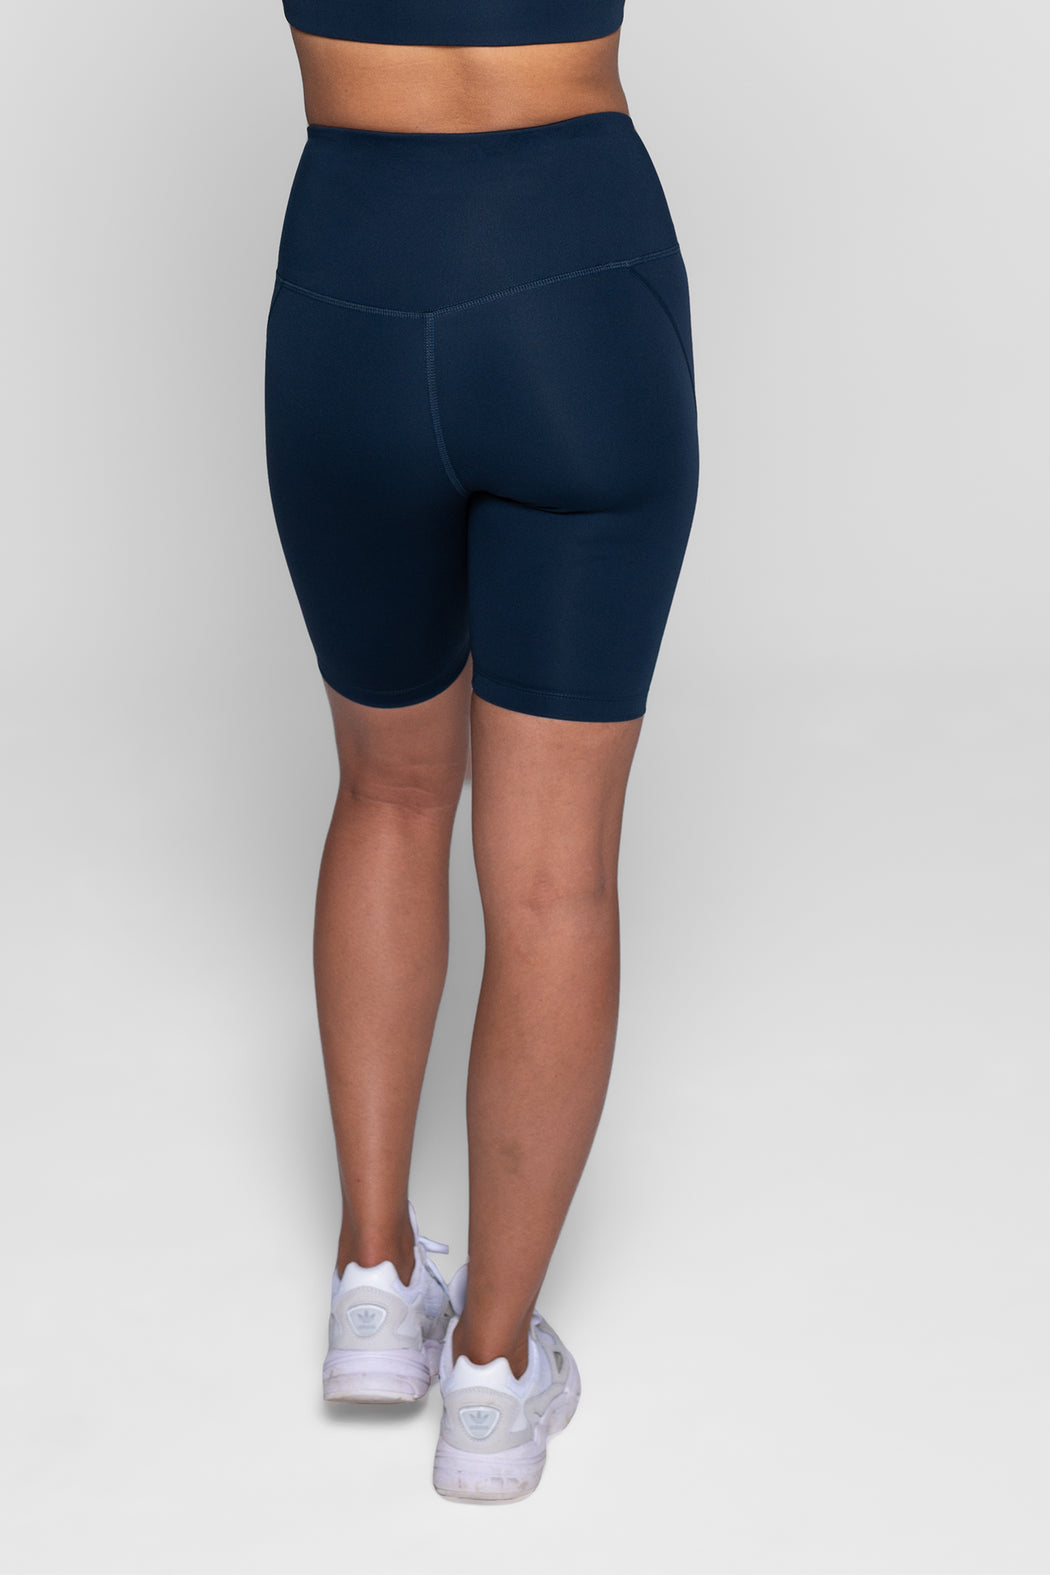 Girlfriend Collective High-Rise Bike Short Midnight